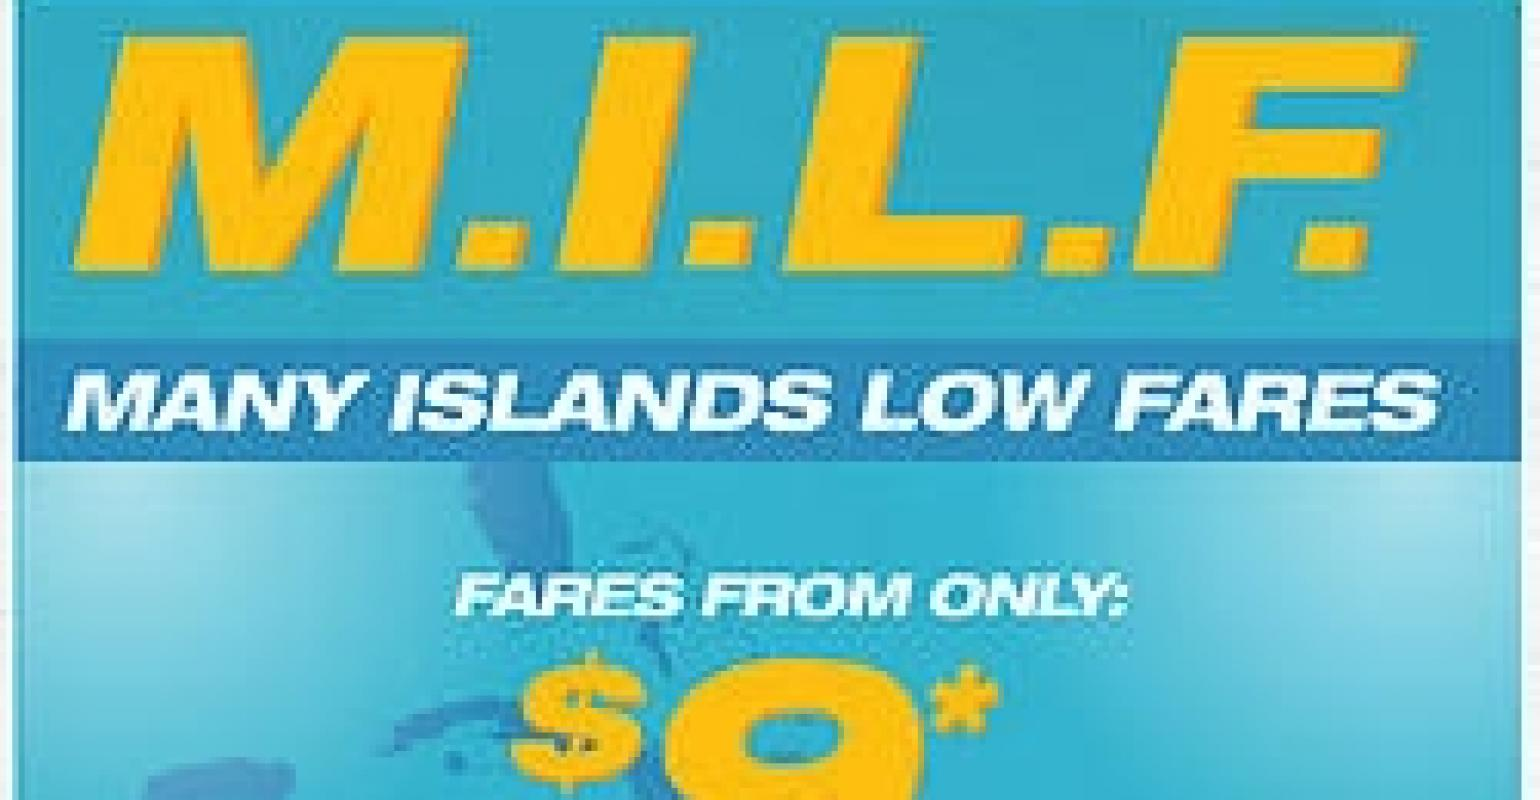 Airline Milf sleazy airline promos | meetingsnet